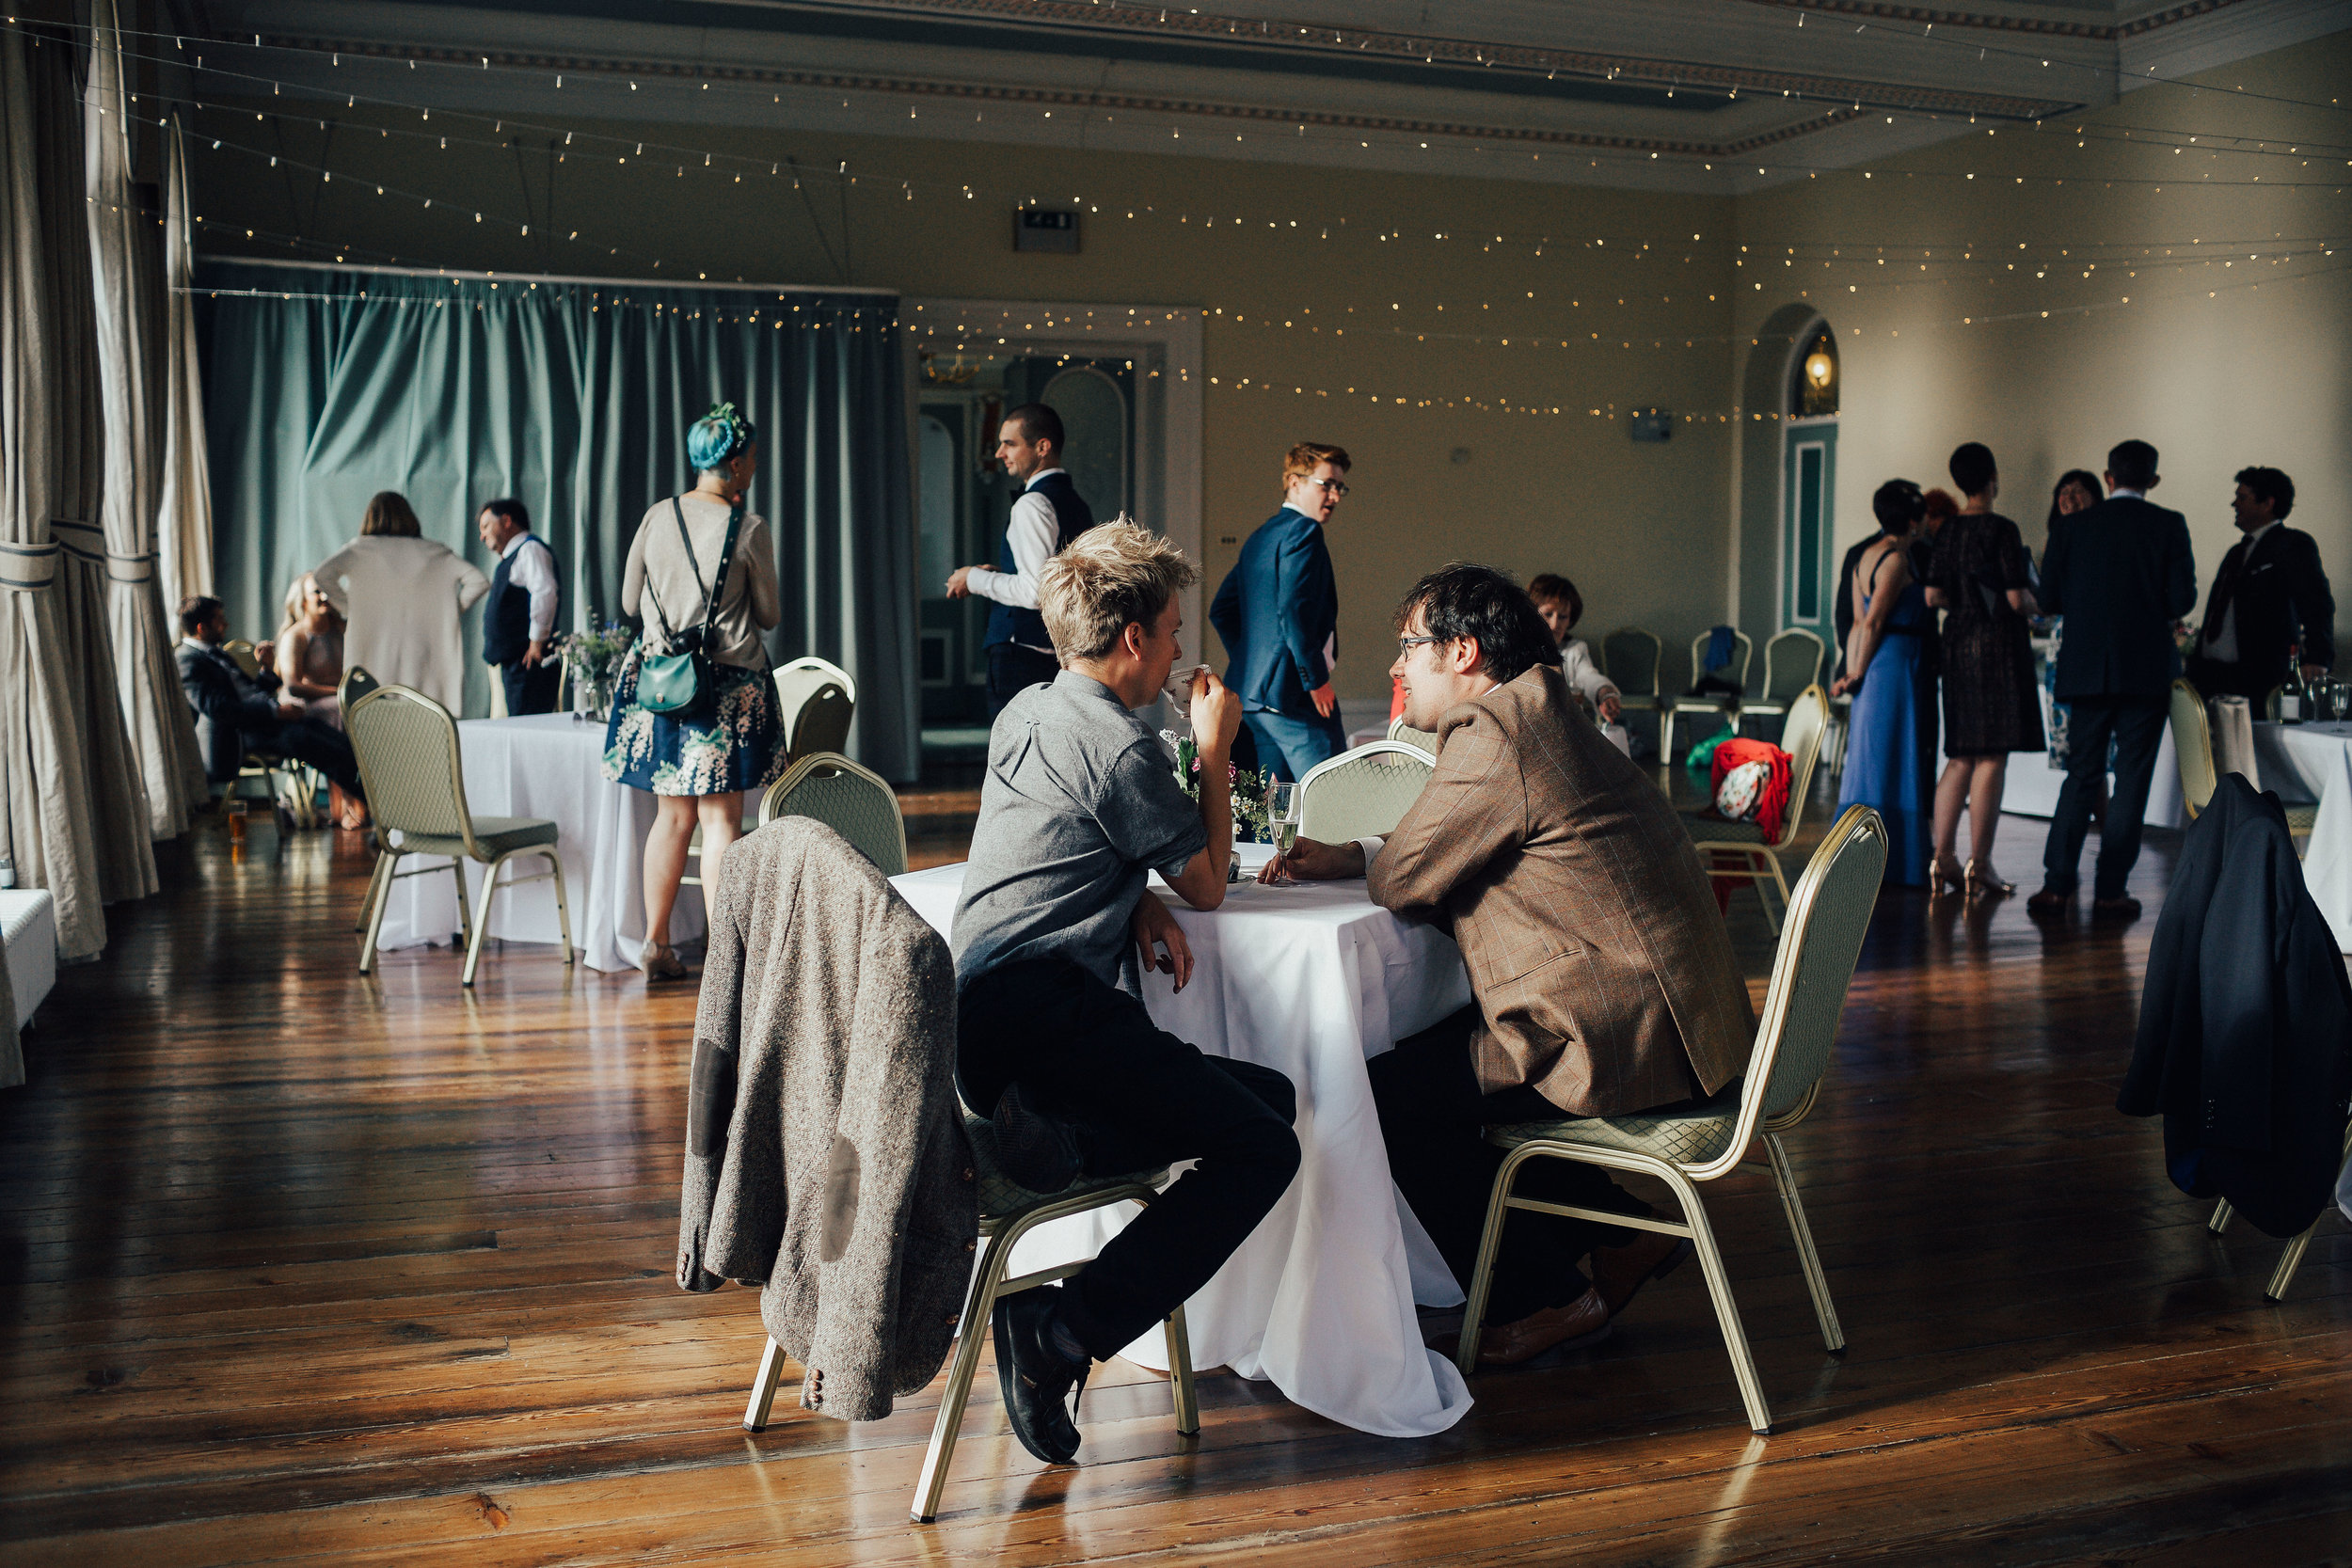 VICTORIA_HALL_SALTAIRE_VINTAGE_YORKSHIRE_WEDDING_PJ_PHILLIPS_PHOTOGRAPHY_109.jpg